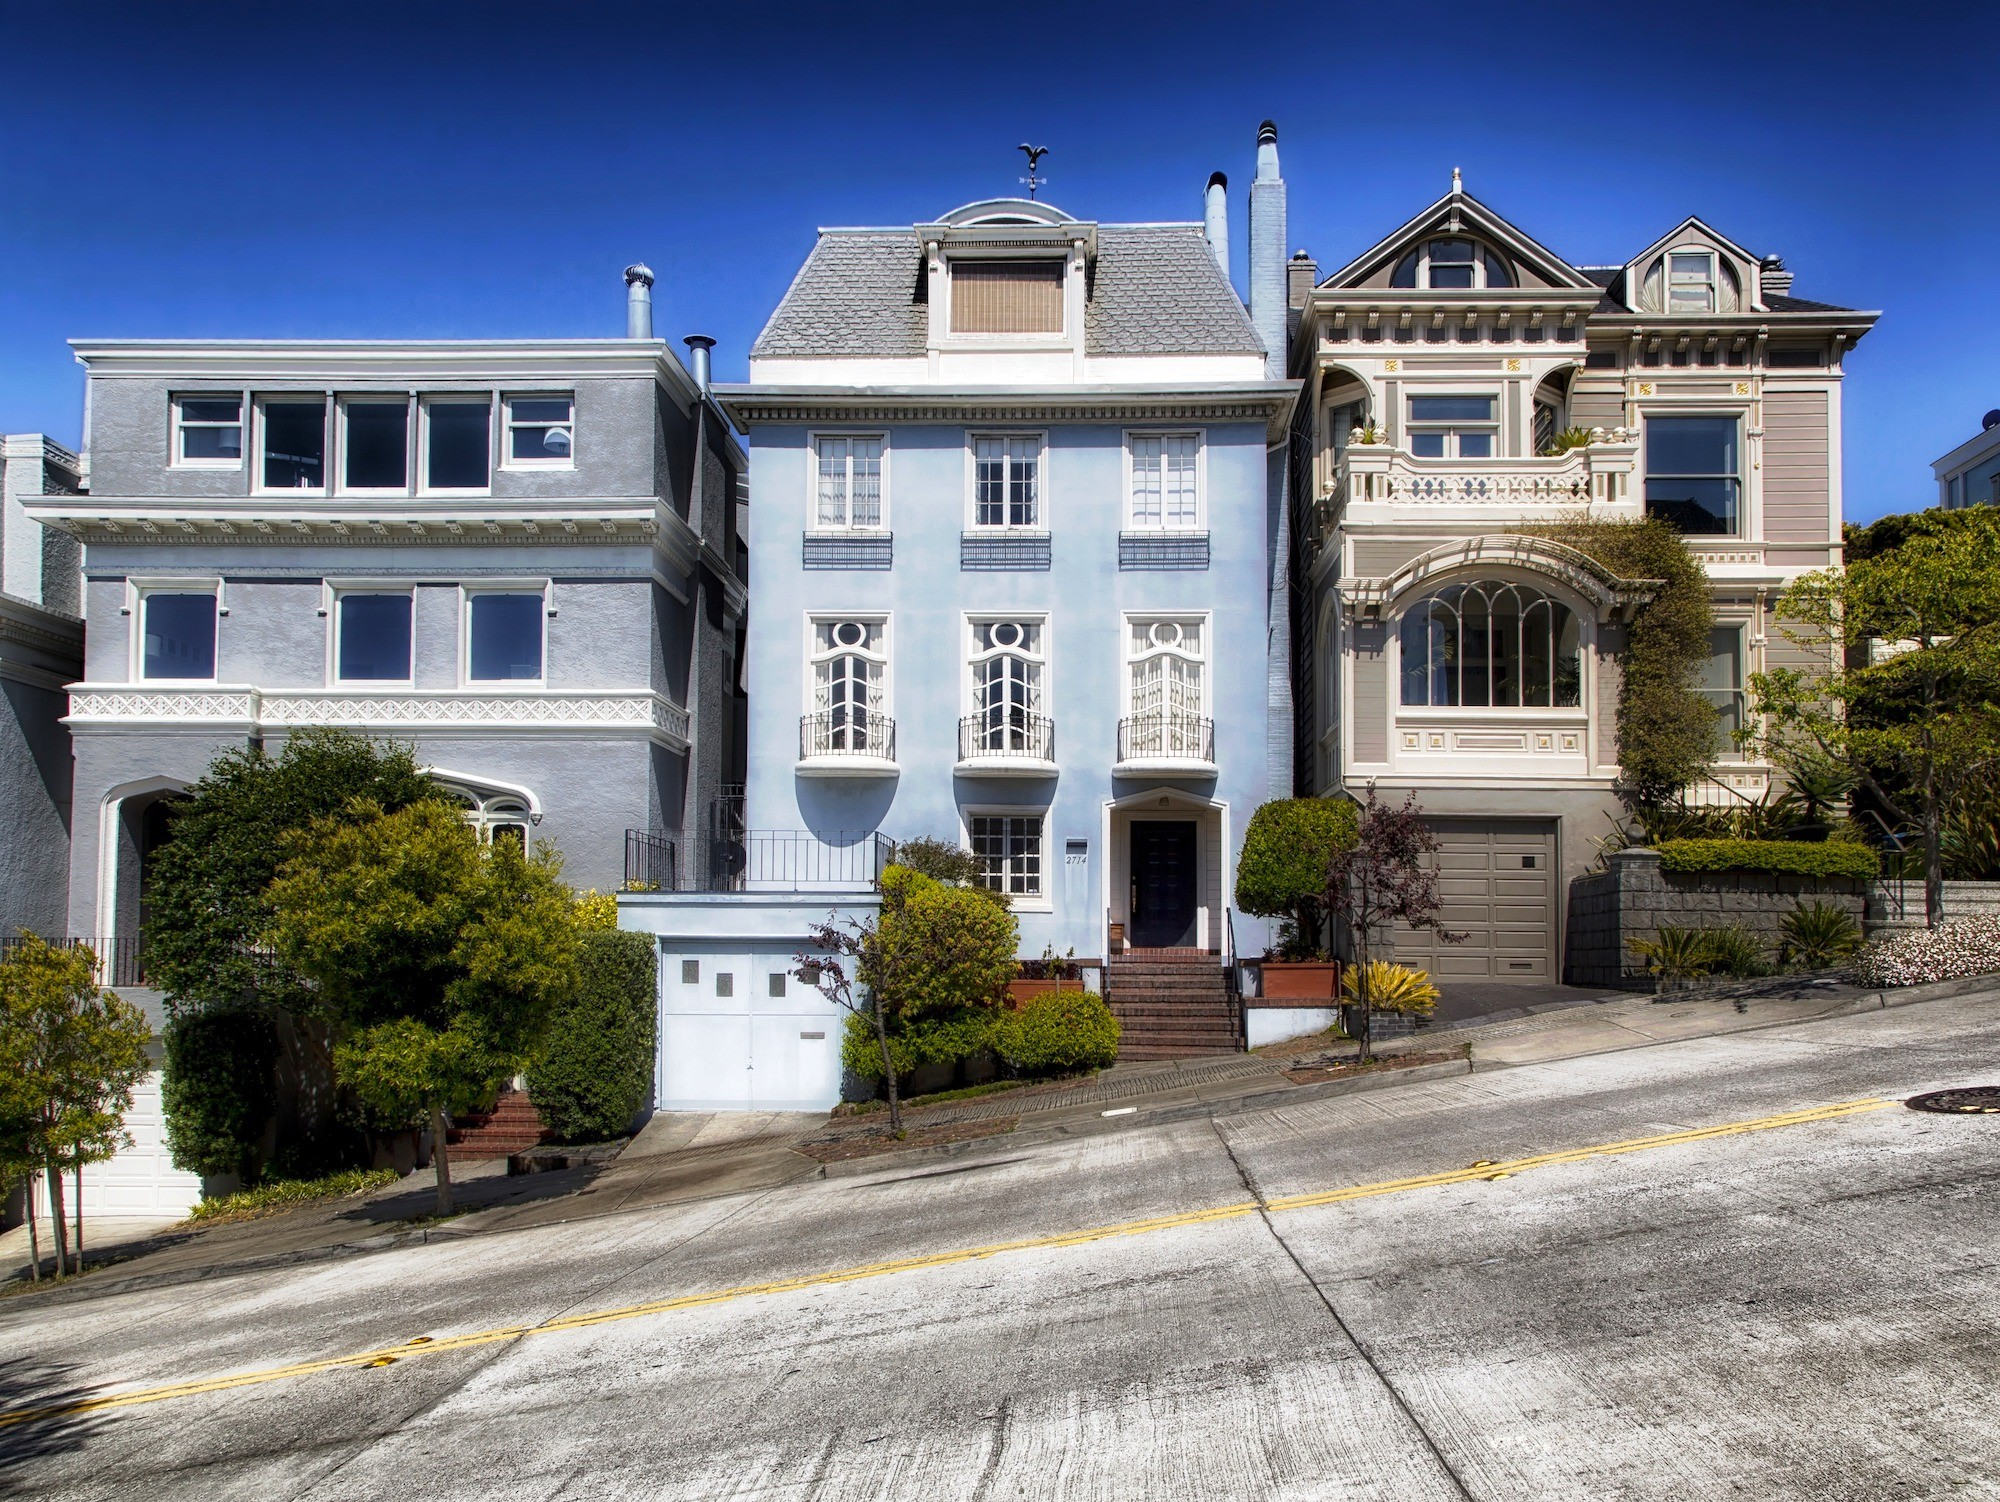 San Francisco Hilly Street